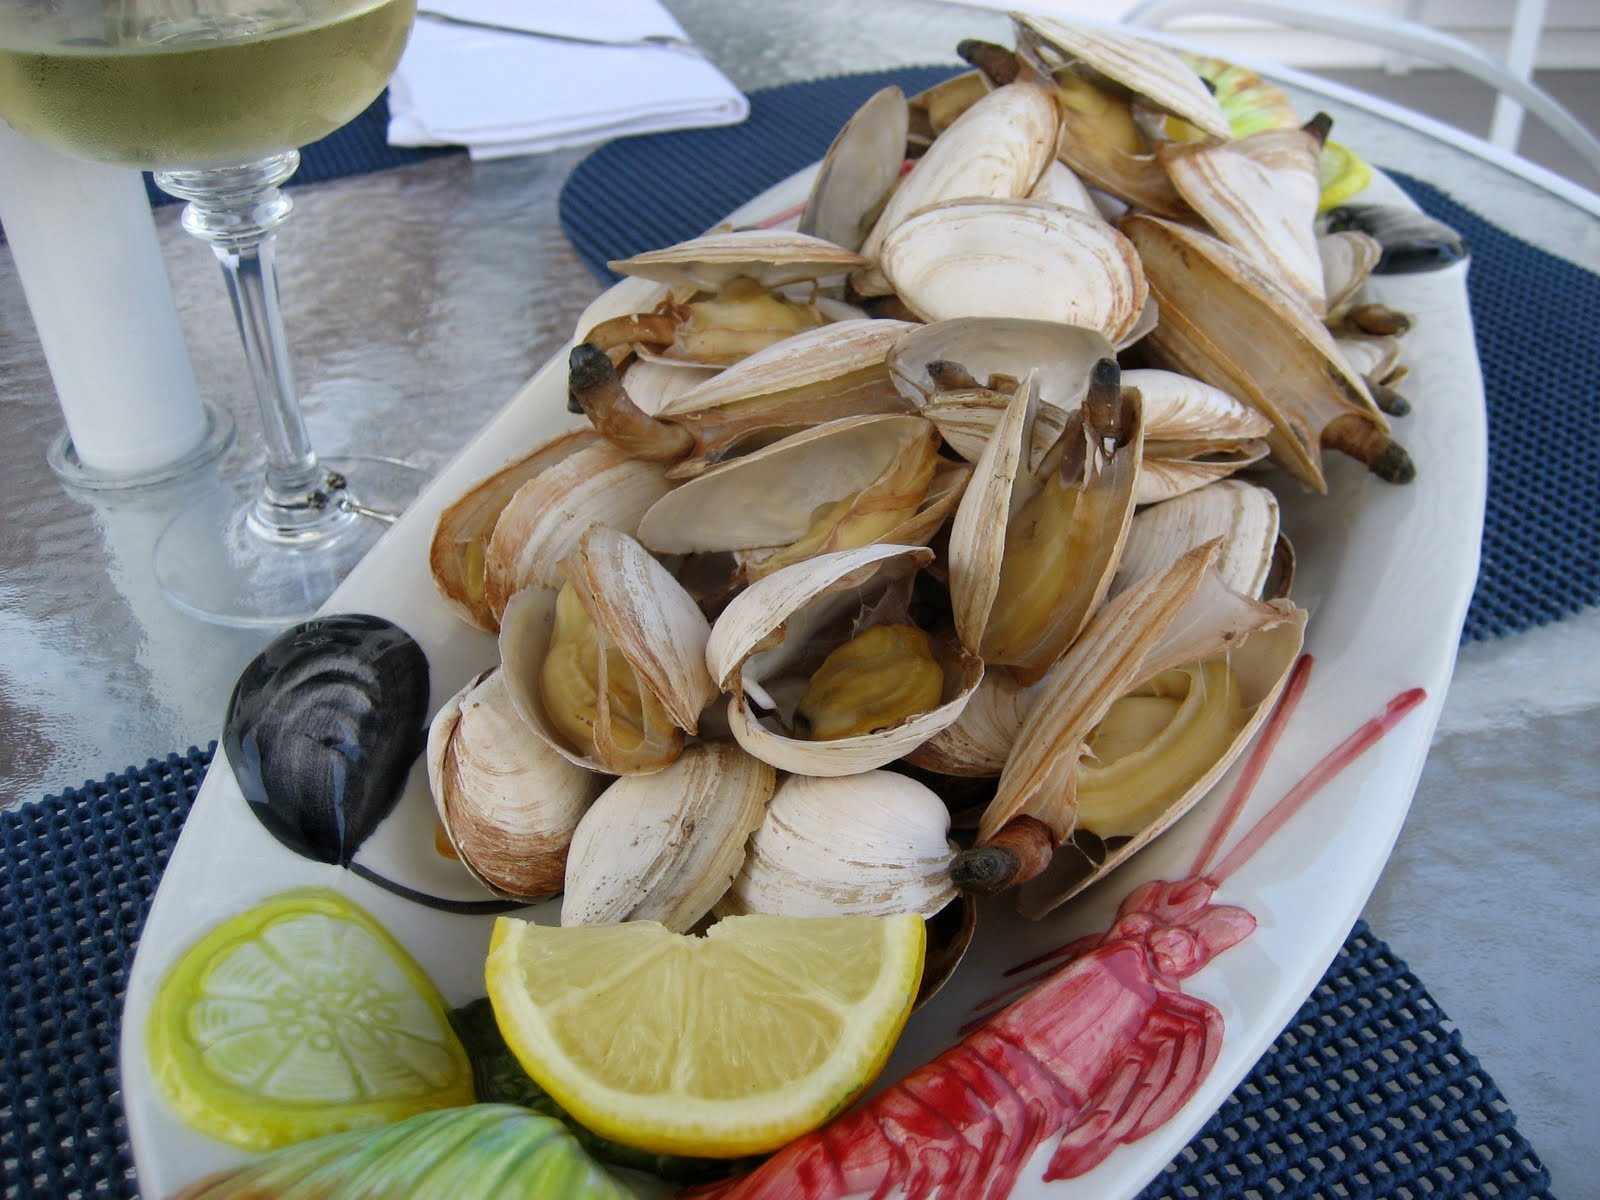 Everything Tasty from My Kitchen: Steamed Clams with Beer